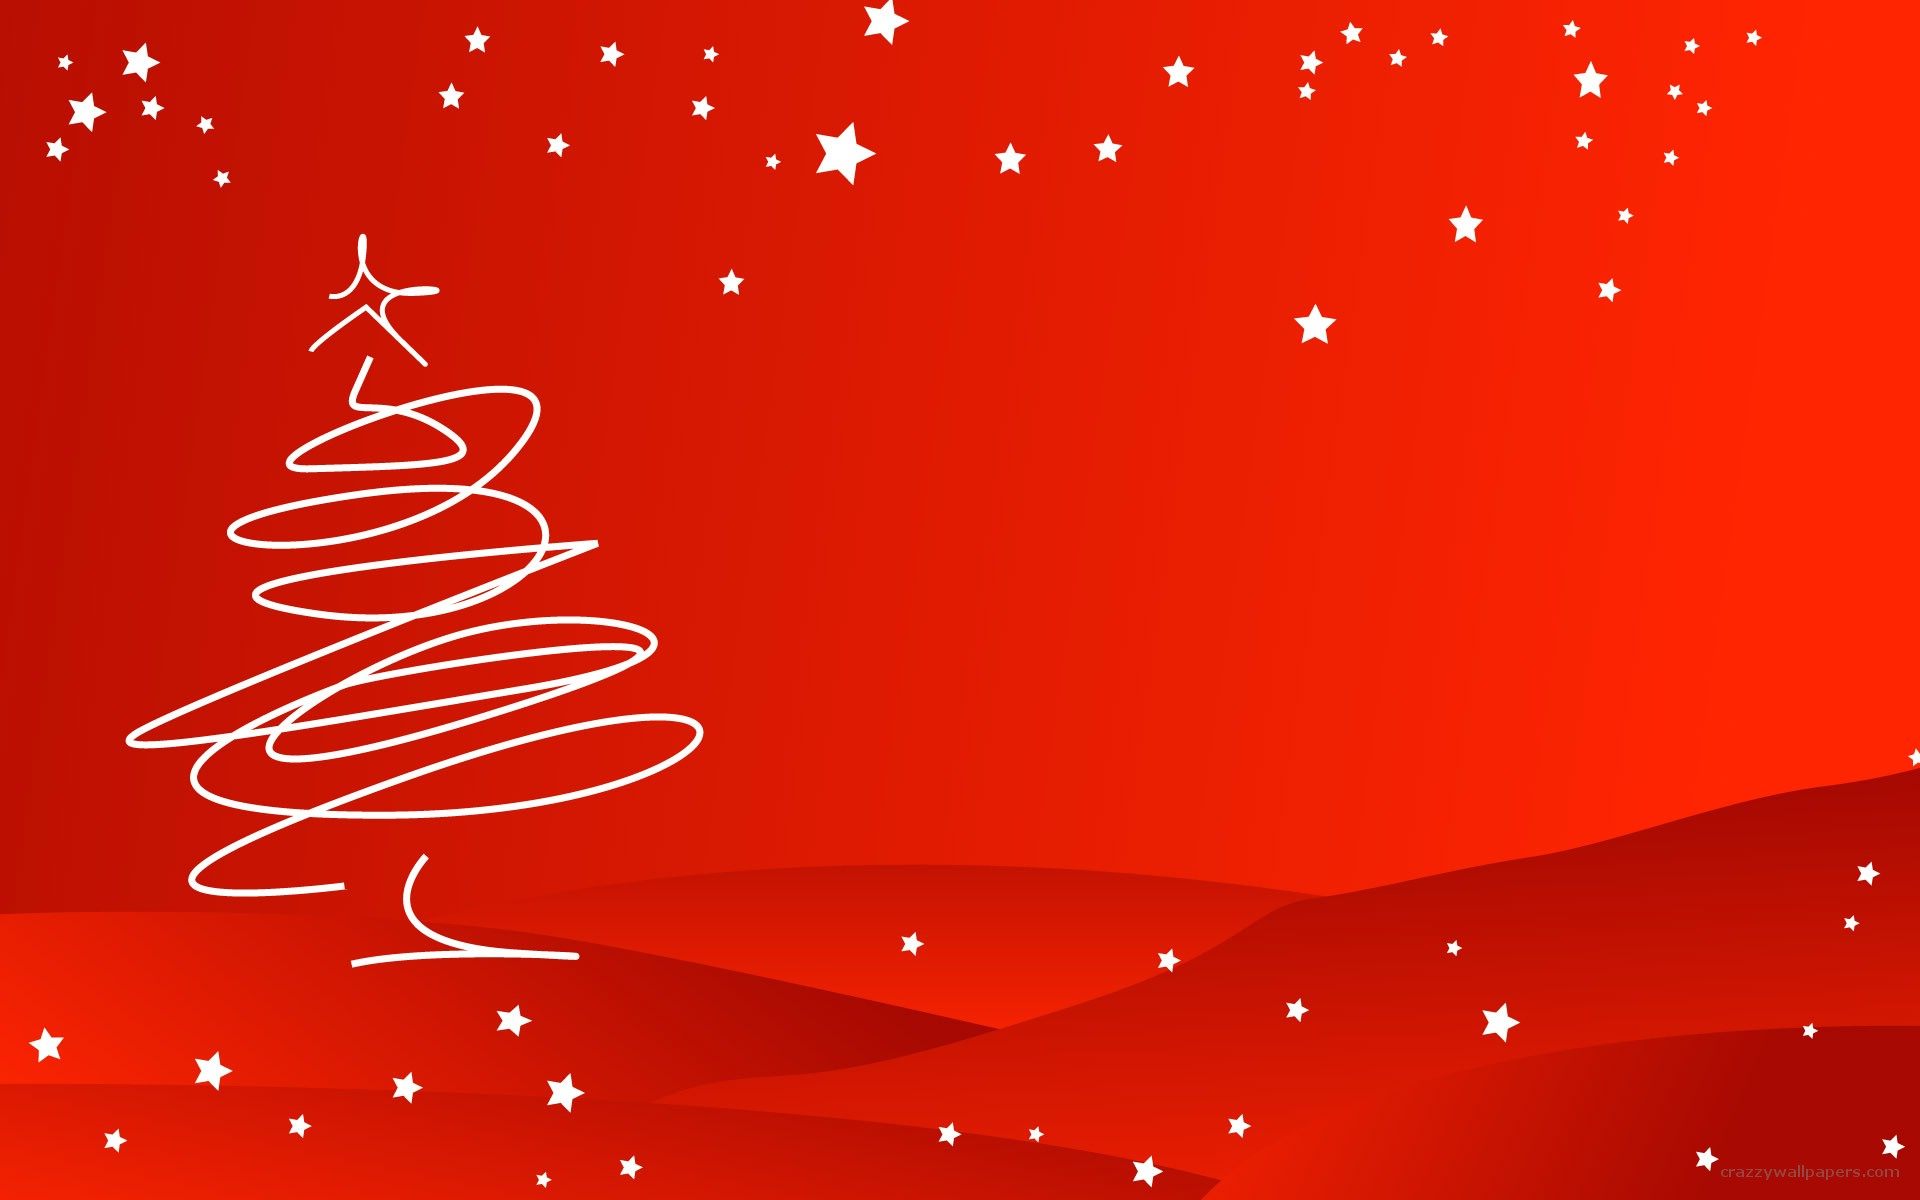 12 Christmas Vector Files Images